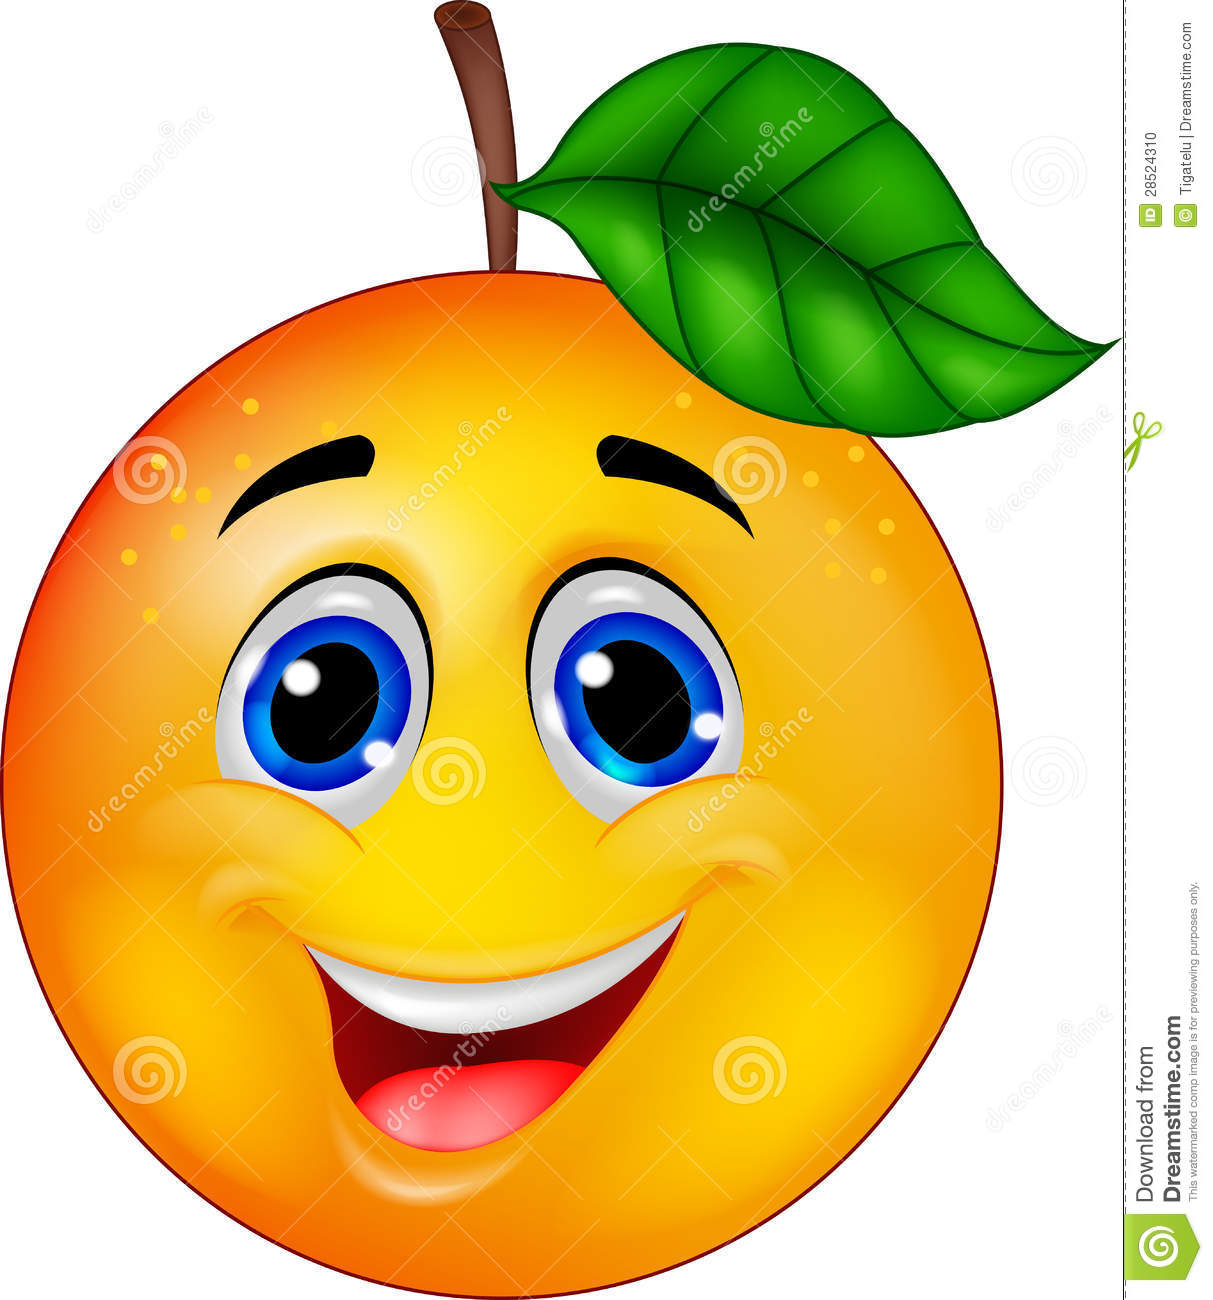 Orange cartoon character stock vector  Illustration of good